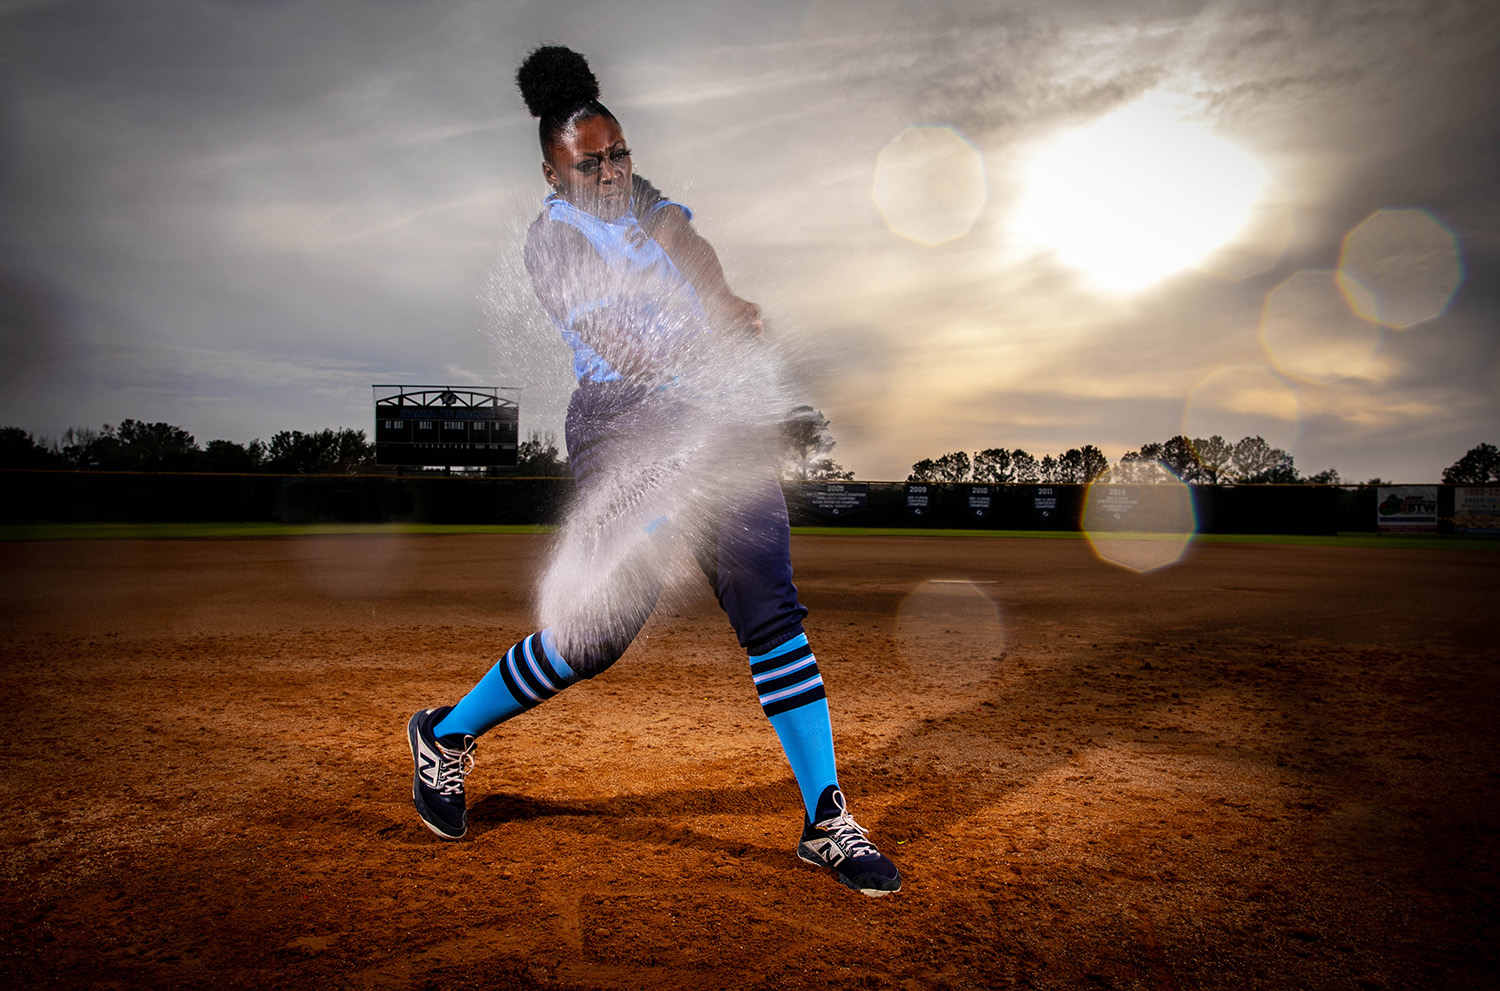 Santa Fe College Softball player Dontaysha Gobourne photographed on Jan. 23, 2020 in Gainesville, Fla.  (Matt Stamey/Santa Fe College ) ***Subjects Have Releases***